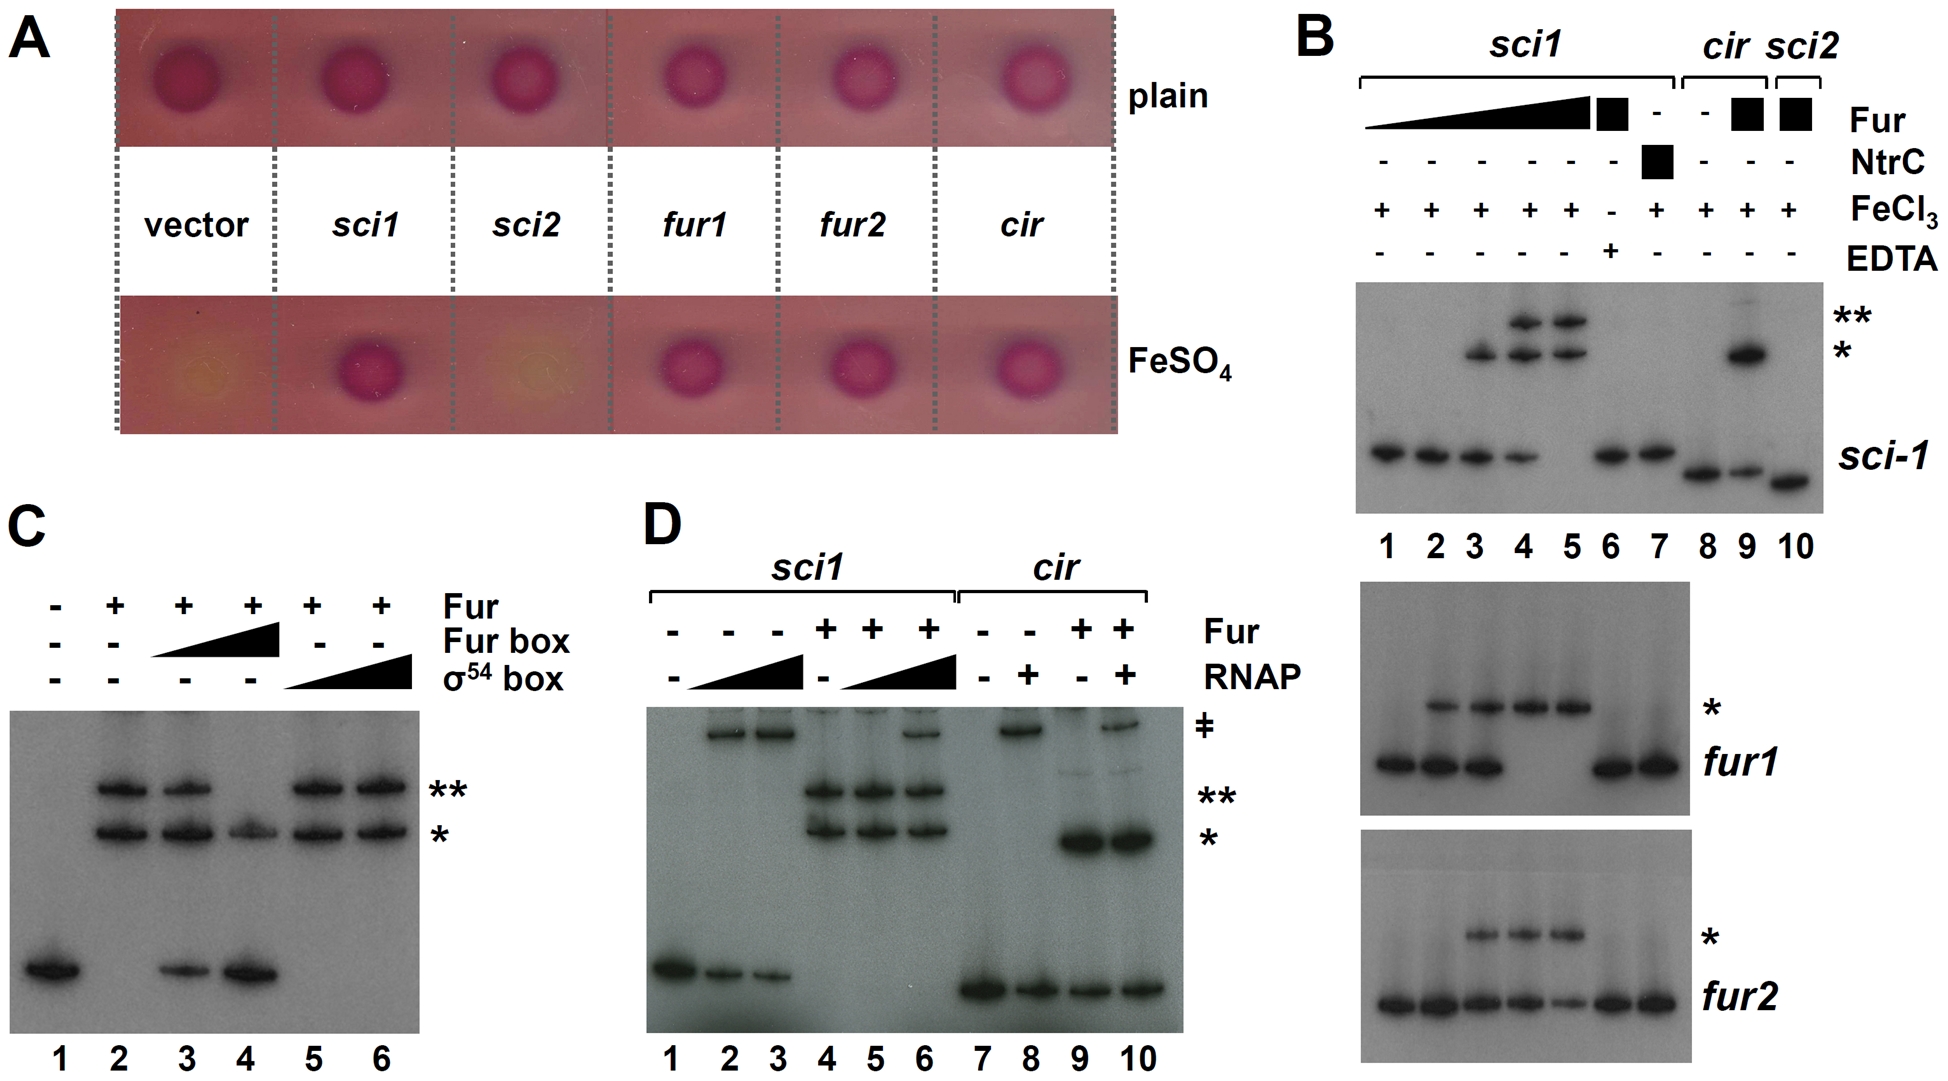 Fur binds to the EAEC <i>sci1</i> T6SS promoter <i>in vivo</i> and <i>in vitro.</i>